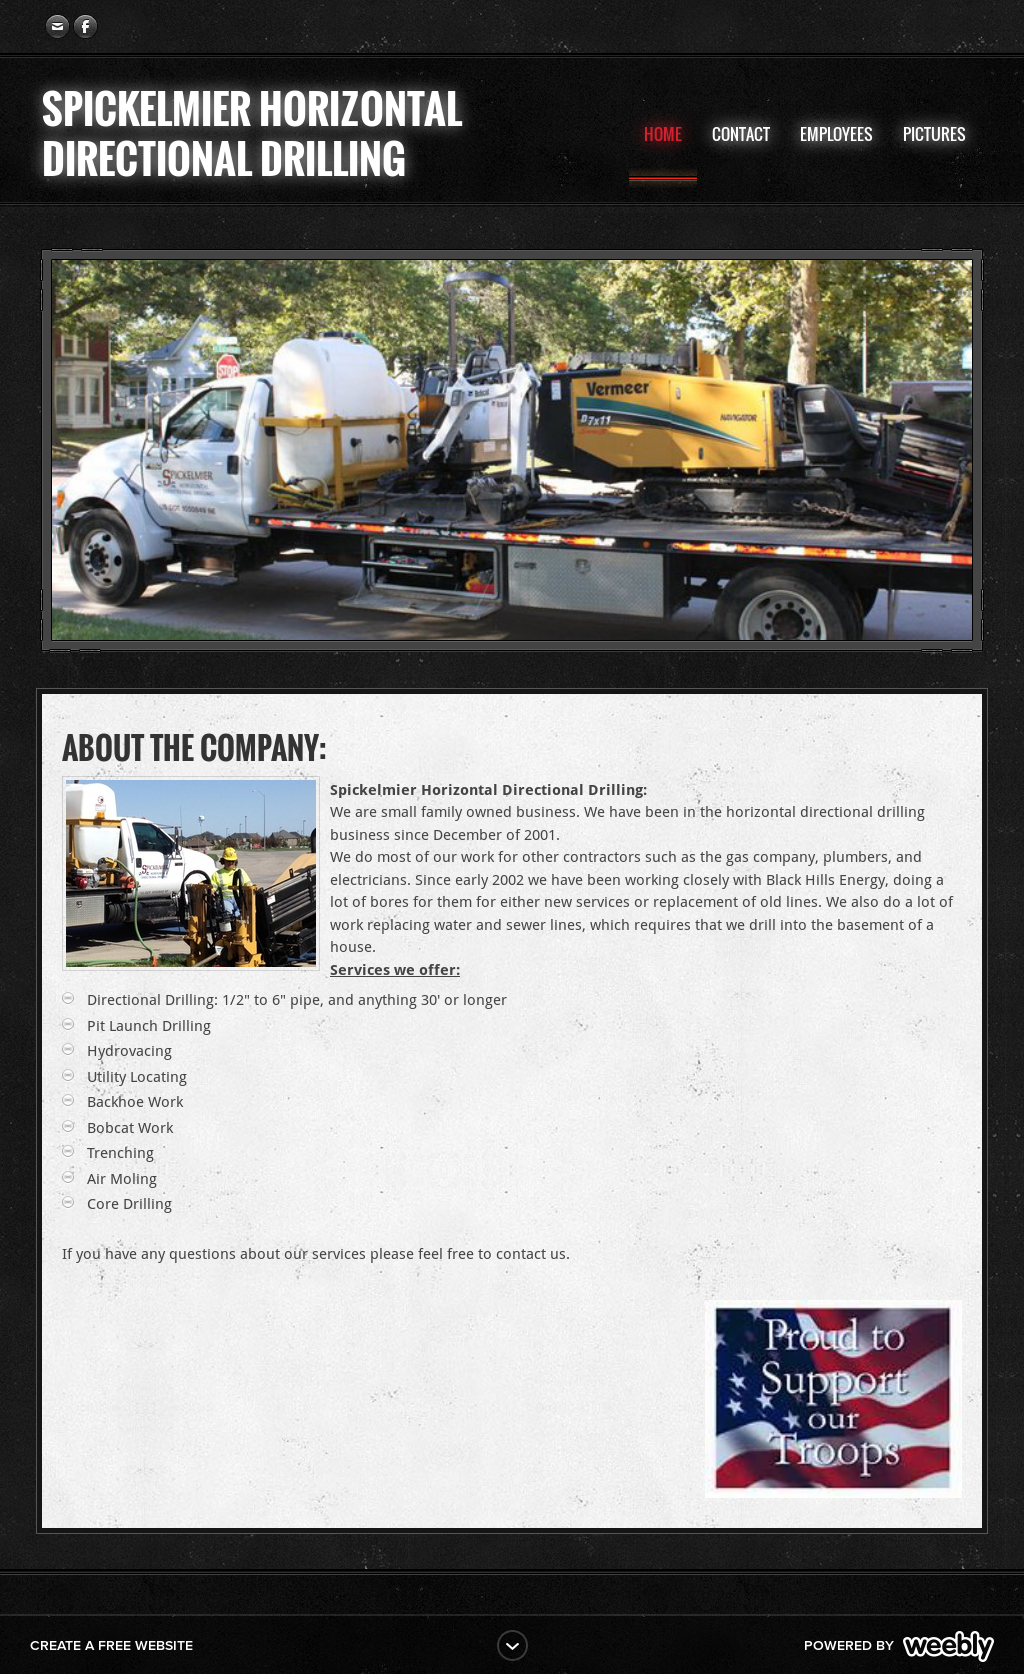 Spickelmier Horizontal Directional Drilling Competitors, Revenue and